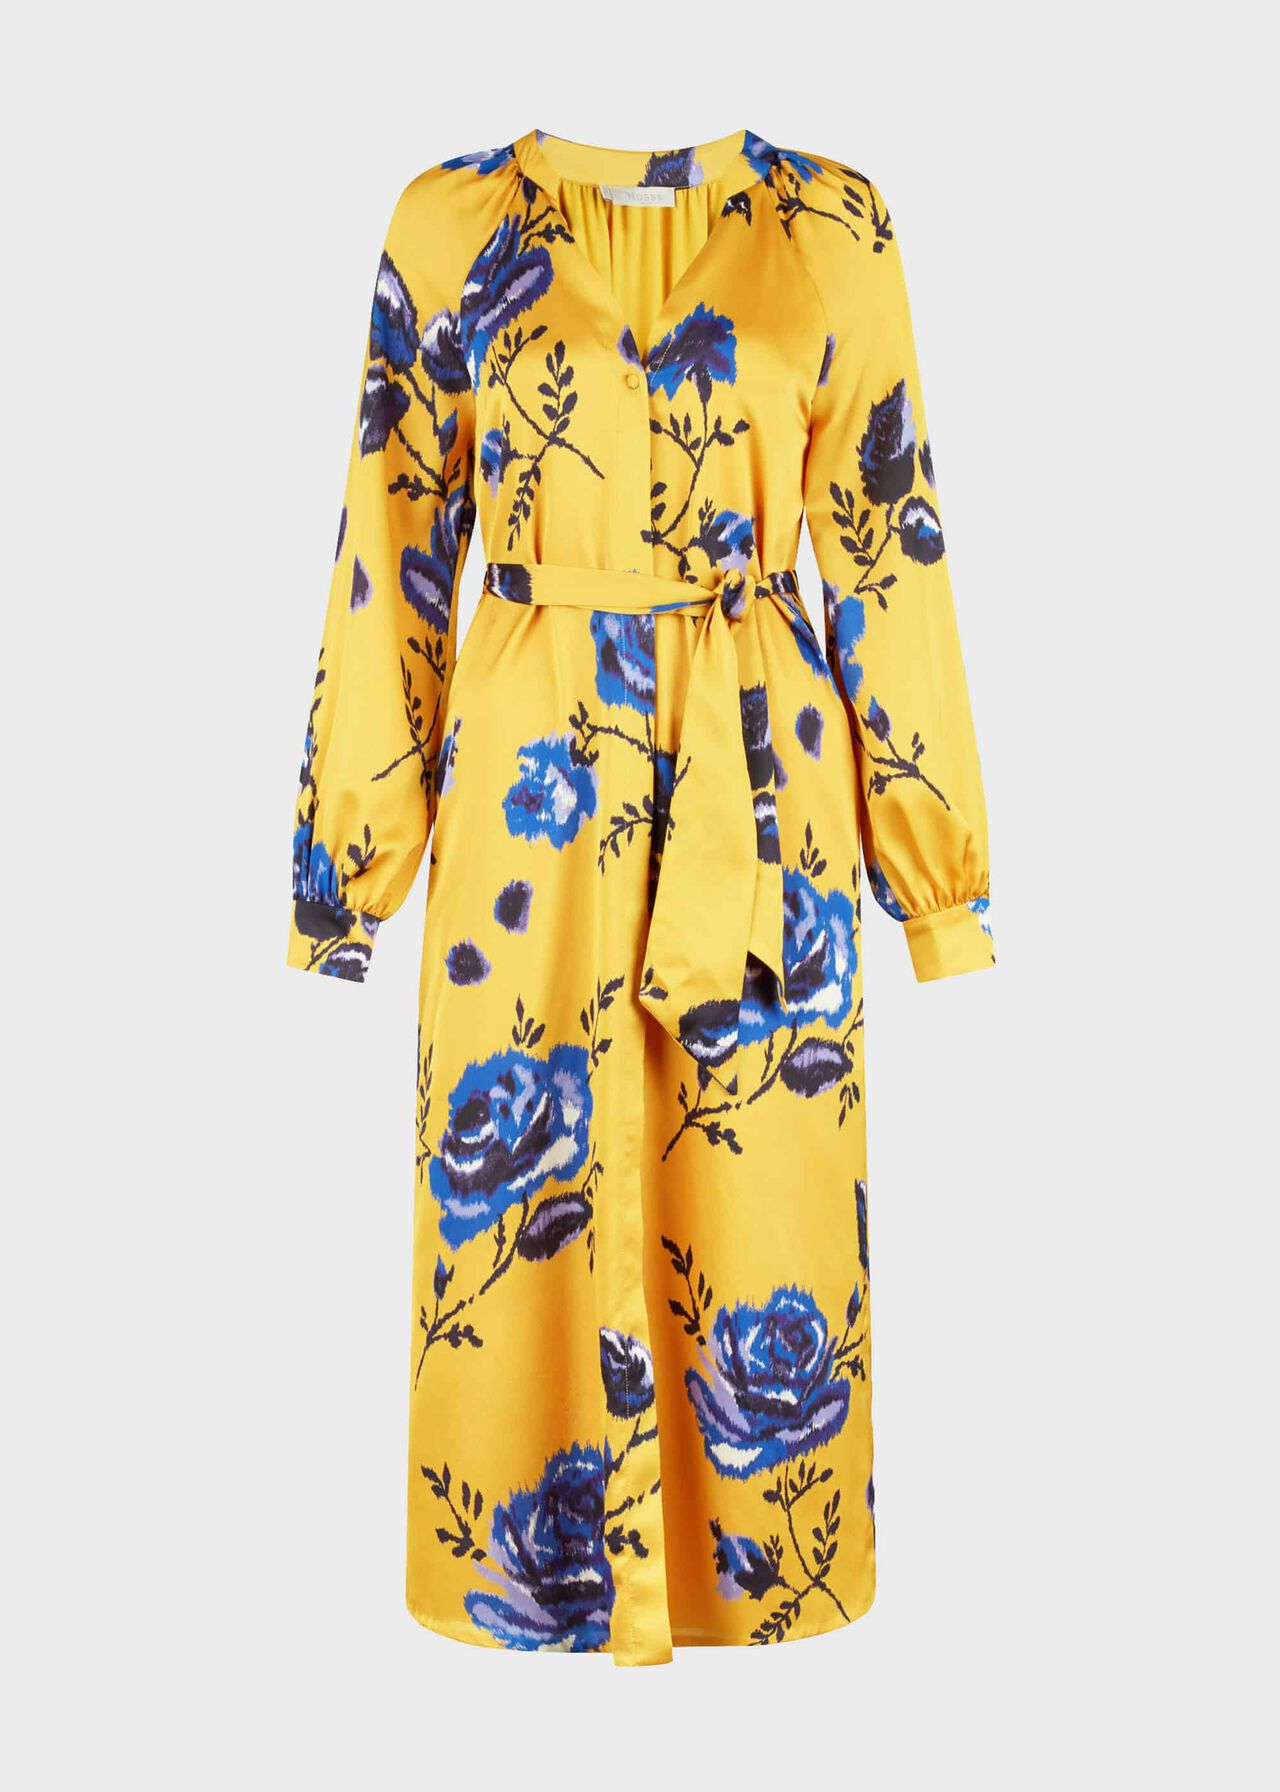 Rosalind Floral Midi Dress Yellow Blue